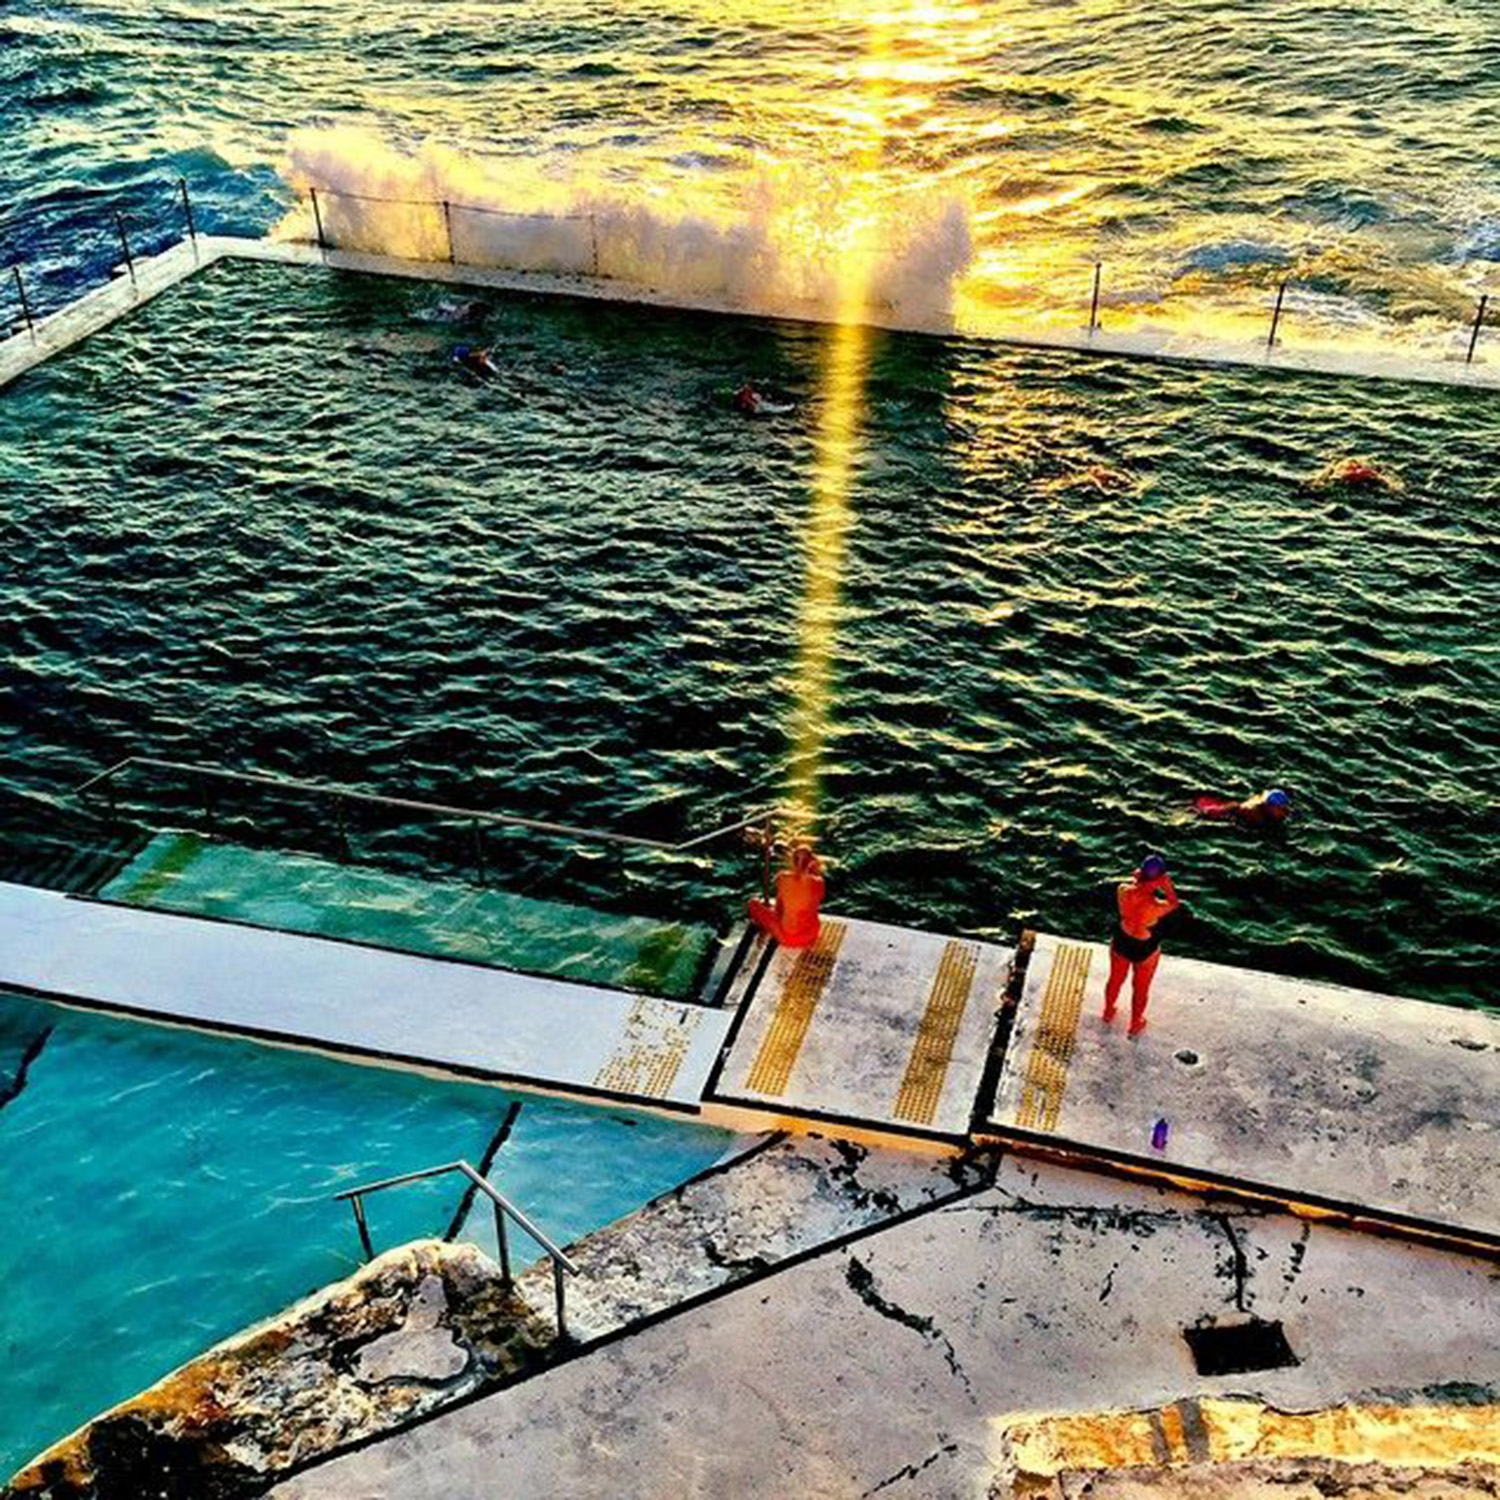 The deep blue water at South Bondi